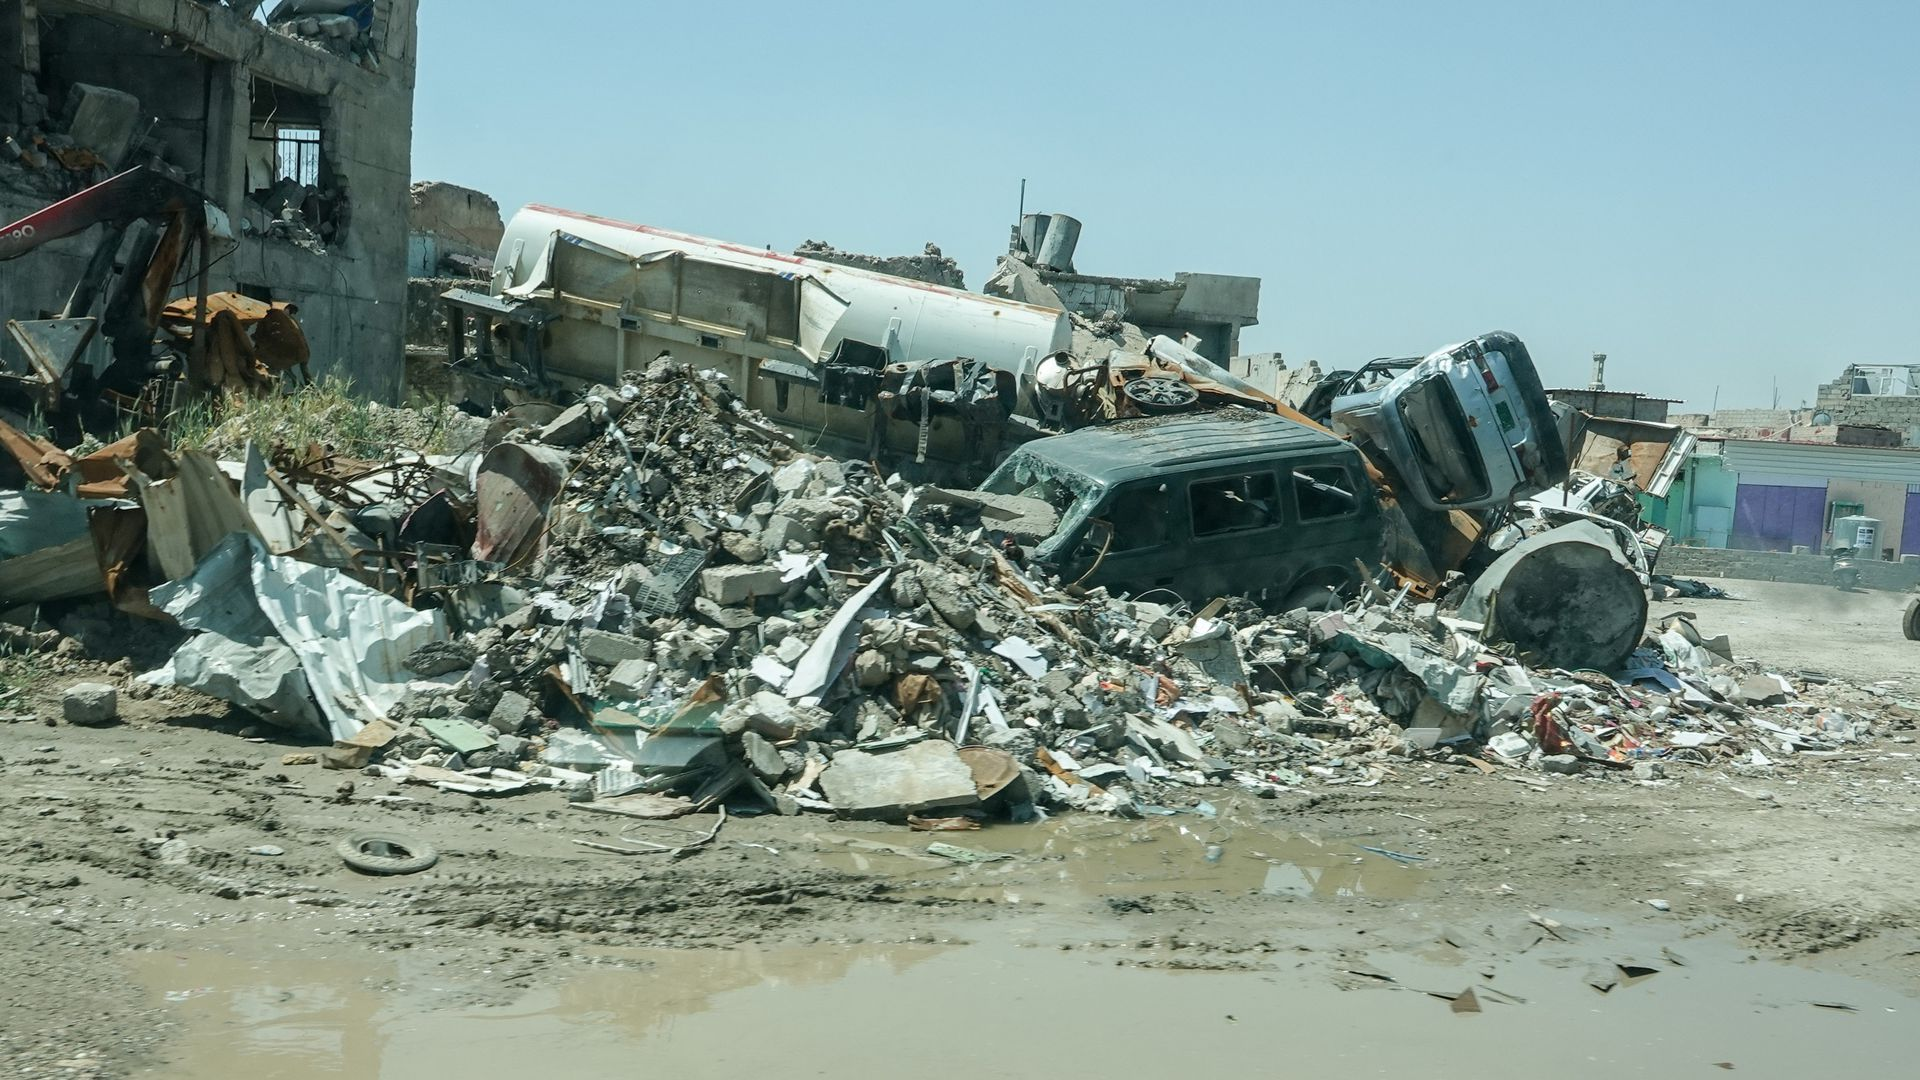 Houses and cars are that were destroyed by the Islamic State litter the city with debris.